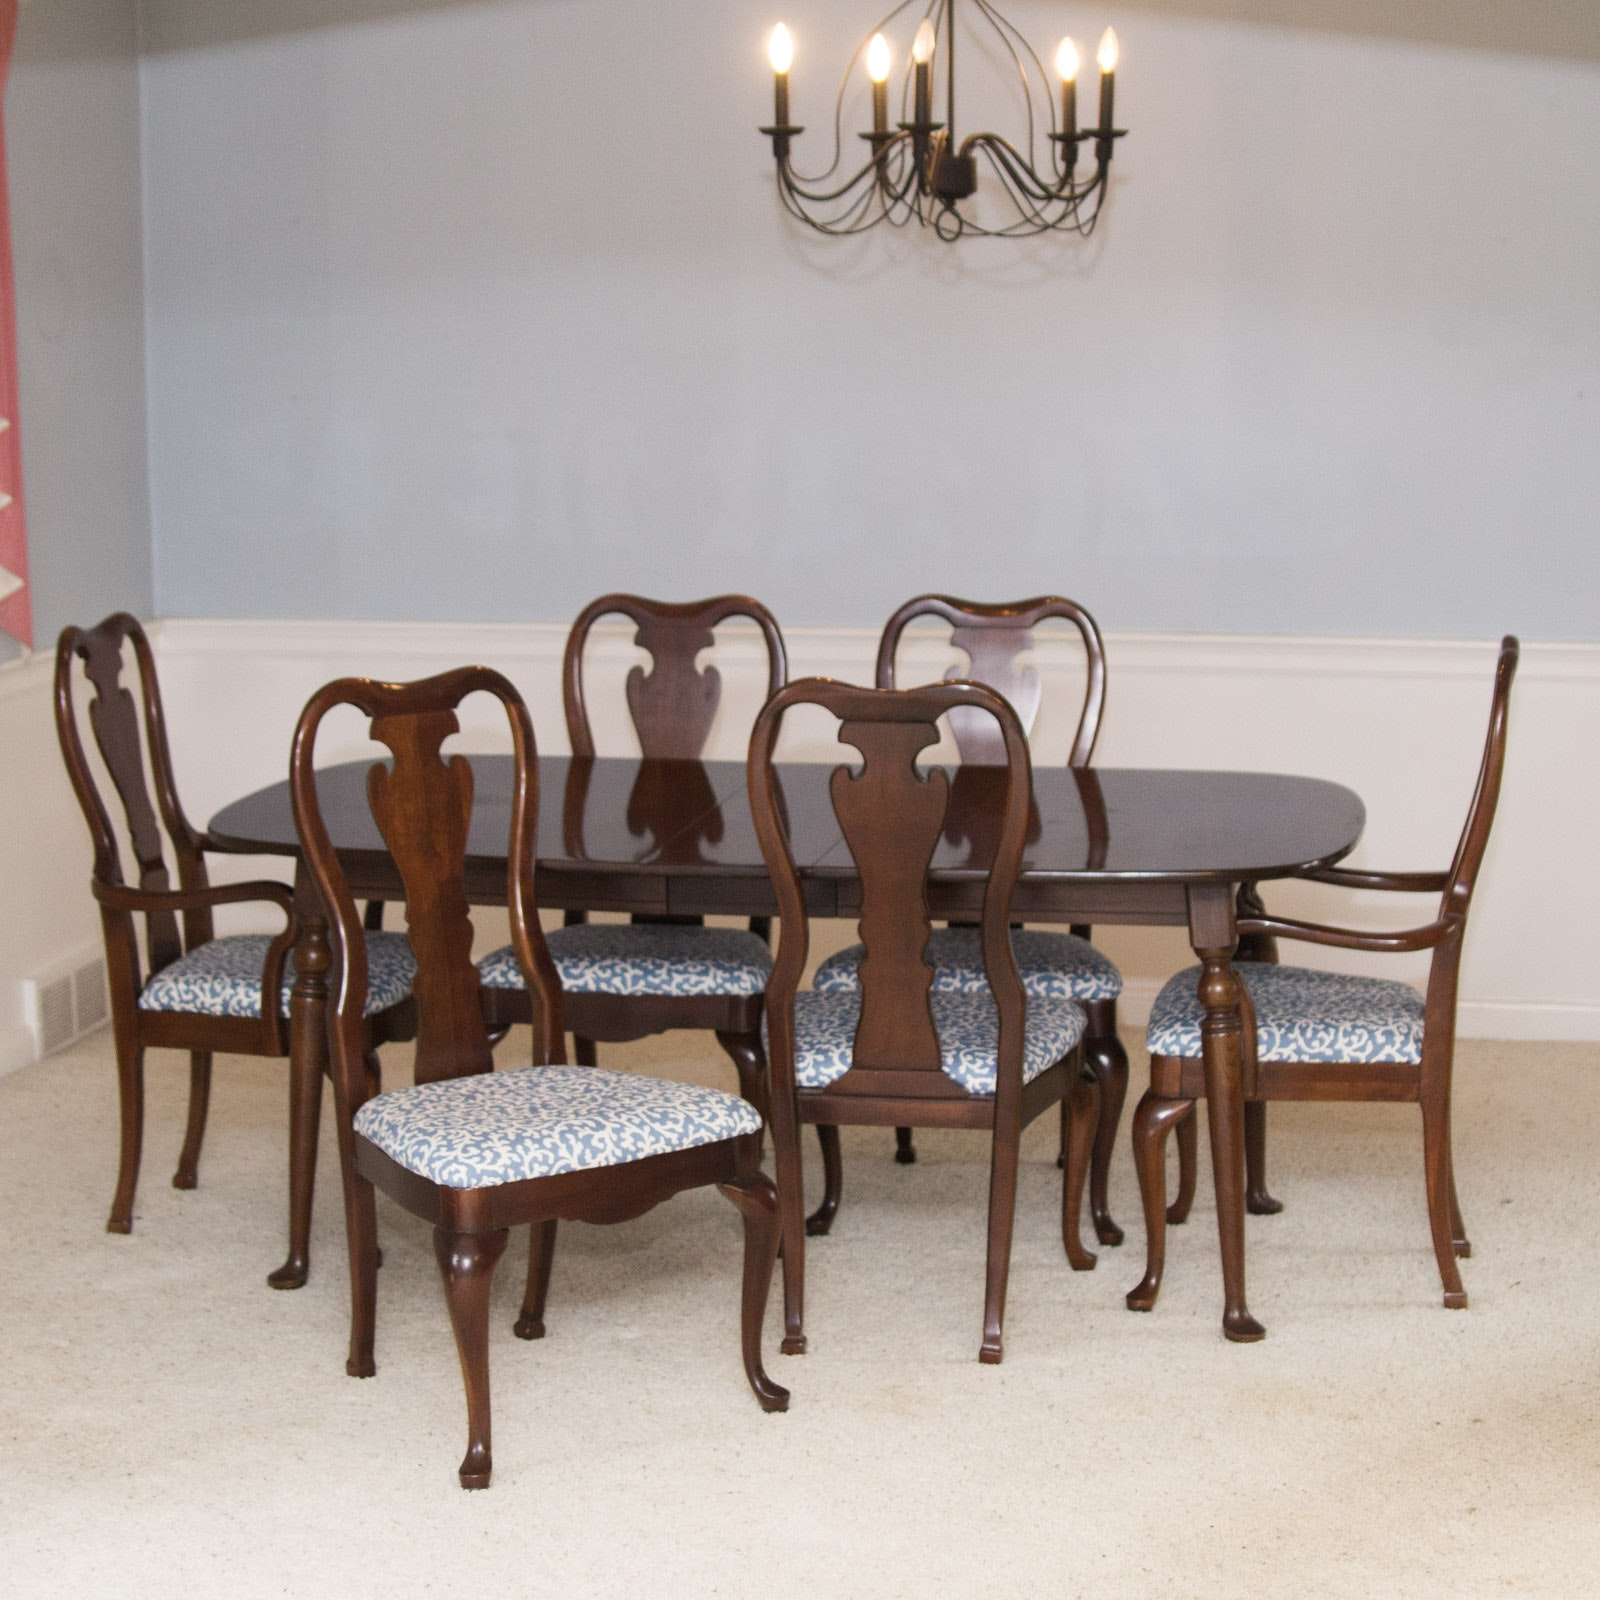 Thomasville Furniture Queen Anne Style Dining Table And Chair Set ...